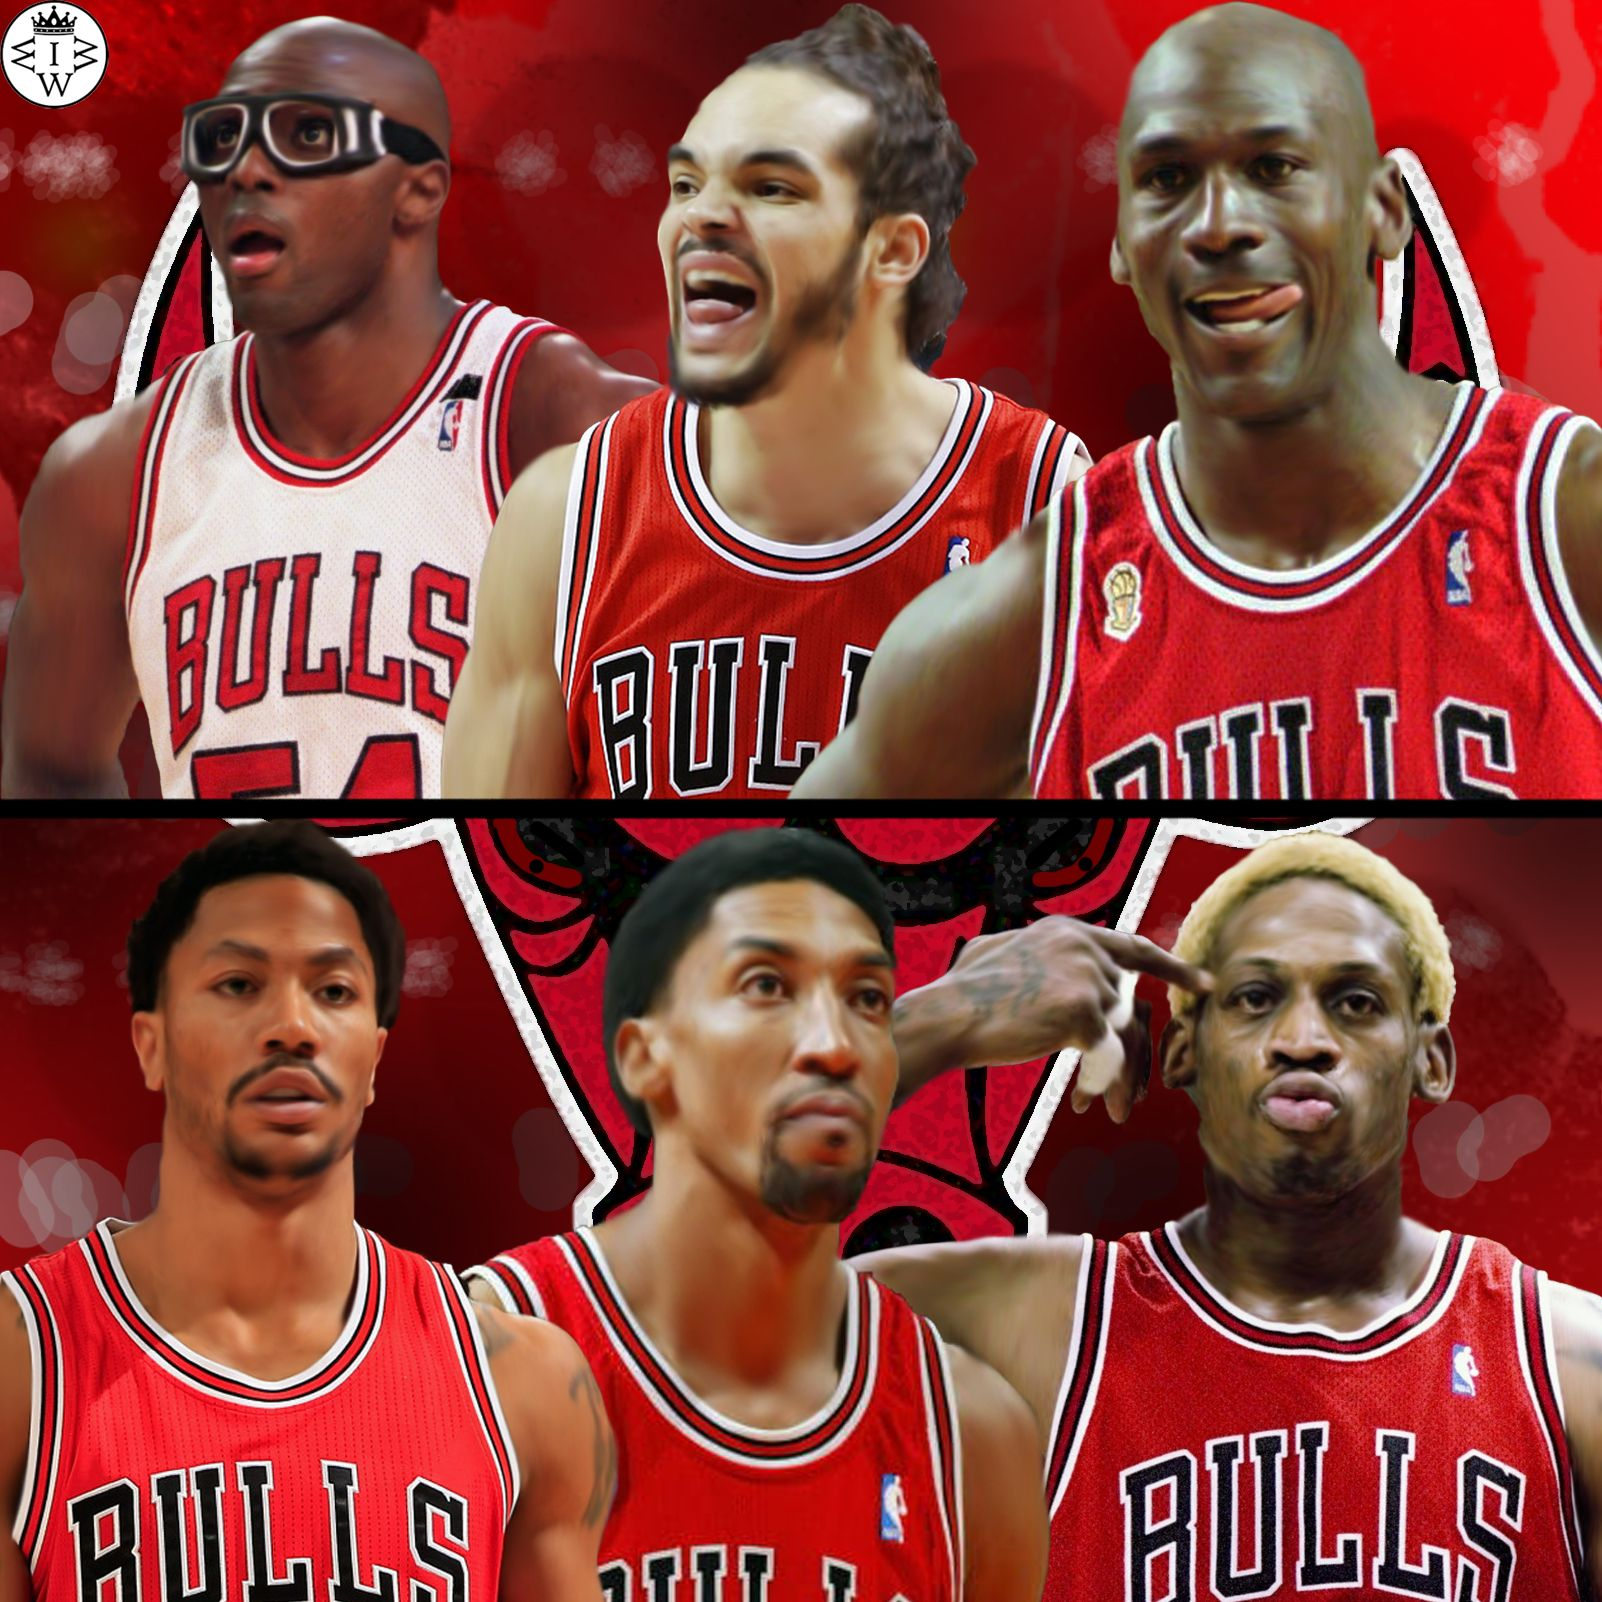 All Chicago Bulls Edition Horace Grant Joakim Noah and Michael